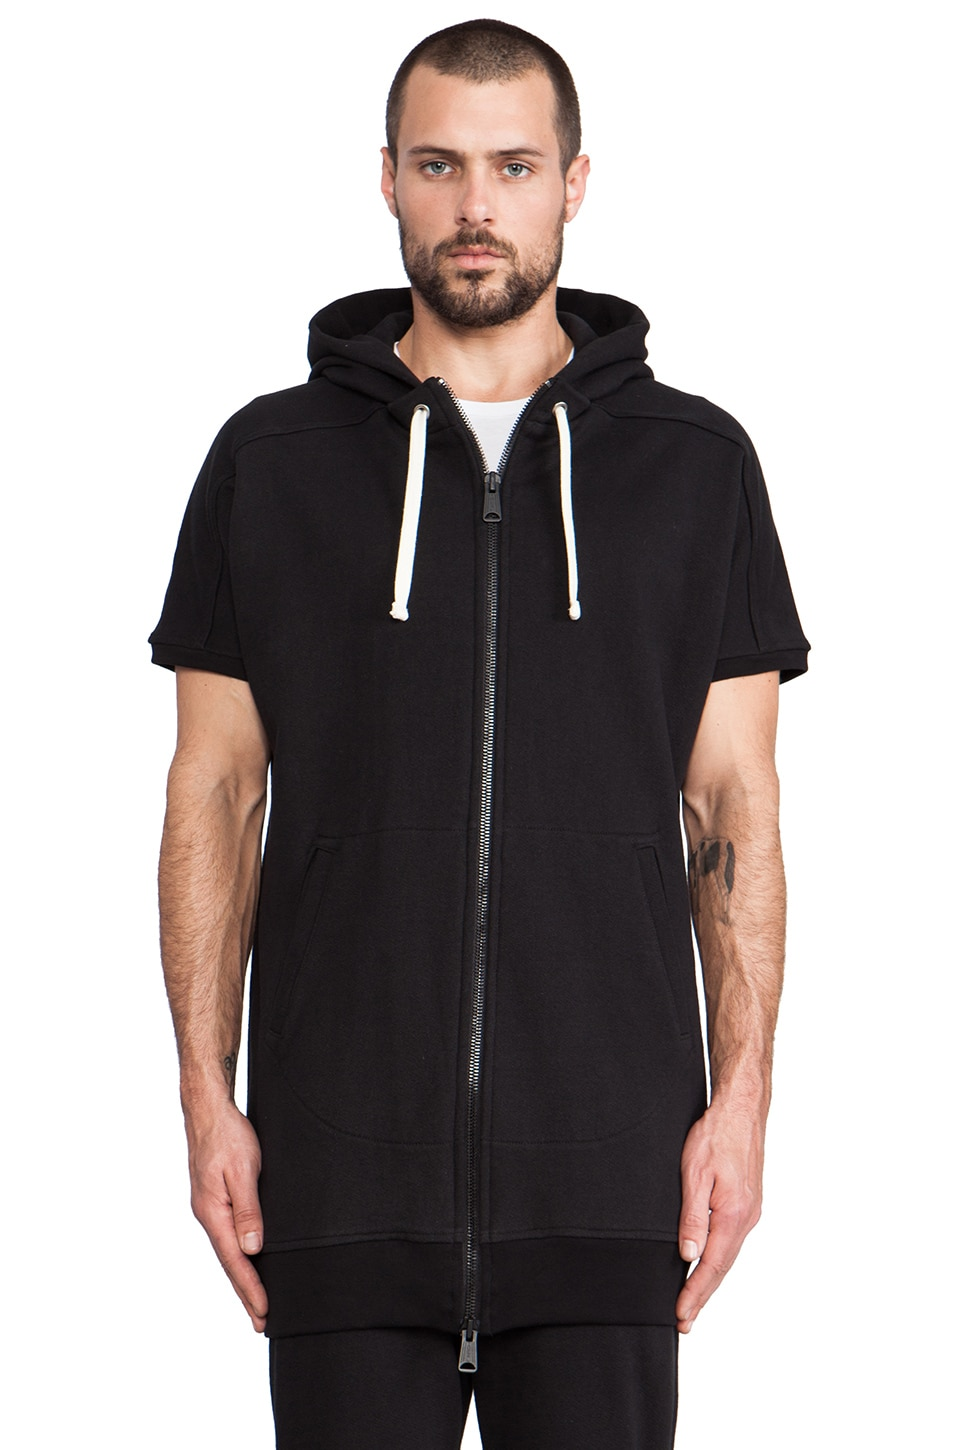 Drifter Magnus Short Sleeve Zip Hoodie in Black